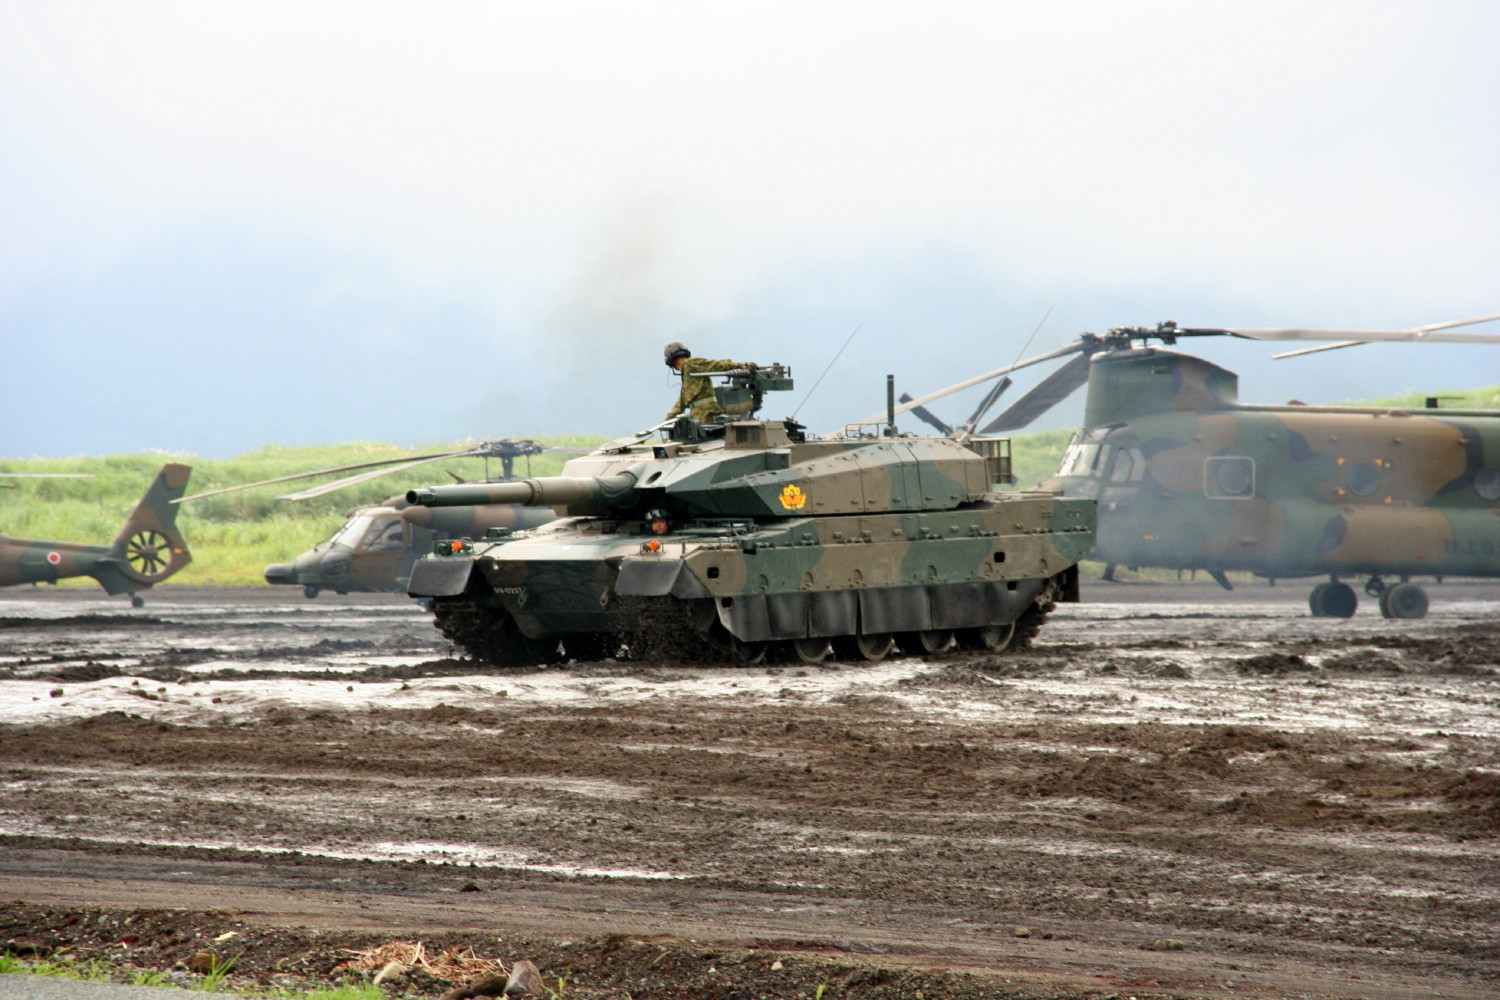 Japanese type 10 main battle tank mbt debuts in military exercise